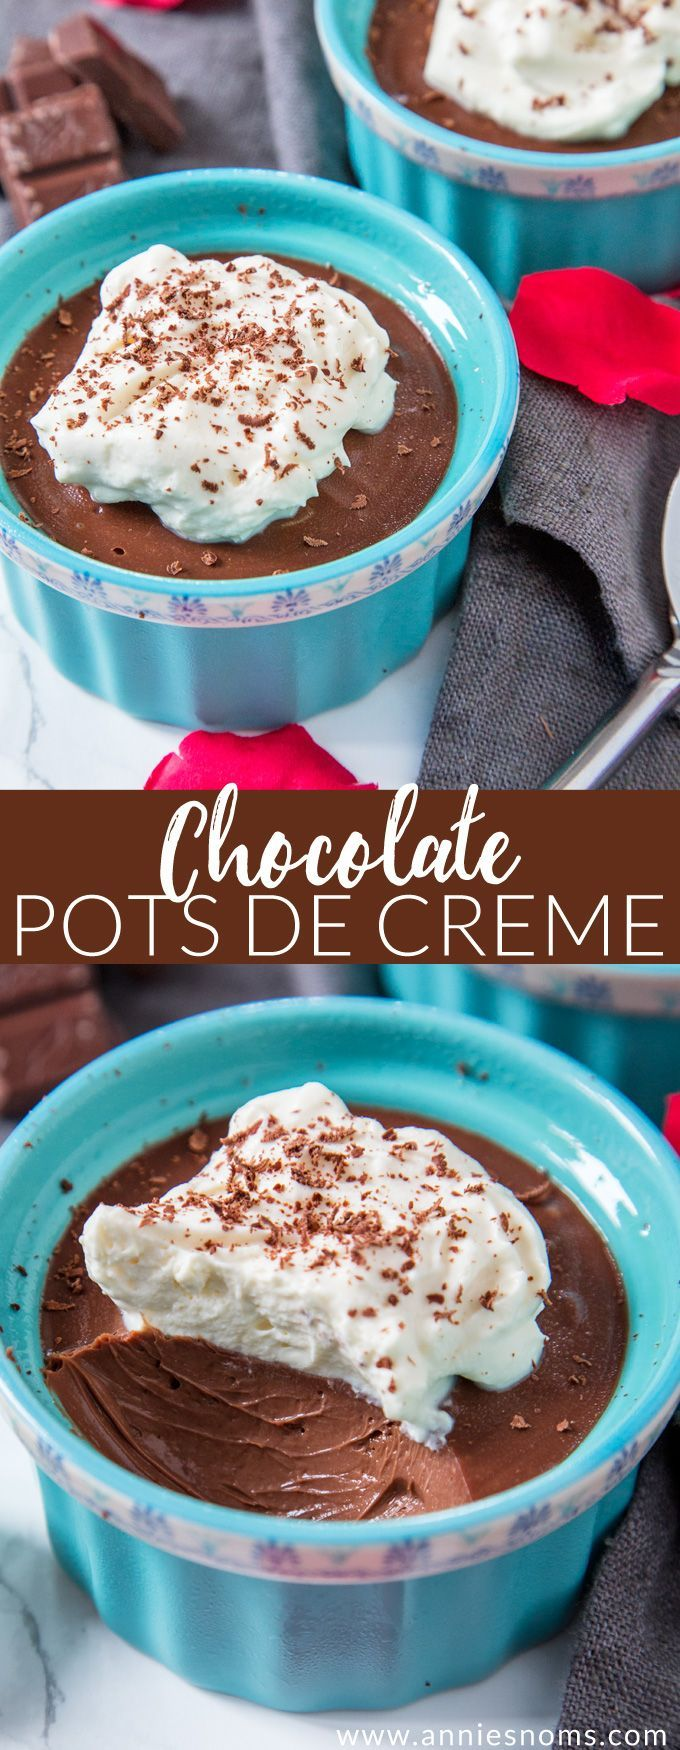 These rich and creamy Chocolate Pots de Creme are super easy to make and the perfect decadent dessert for you and a loved one!